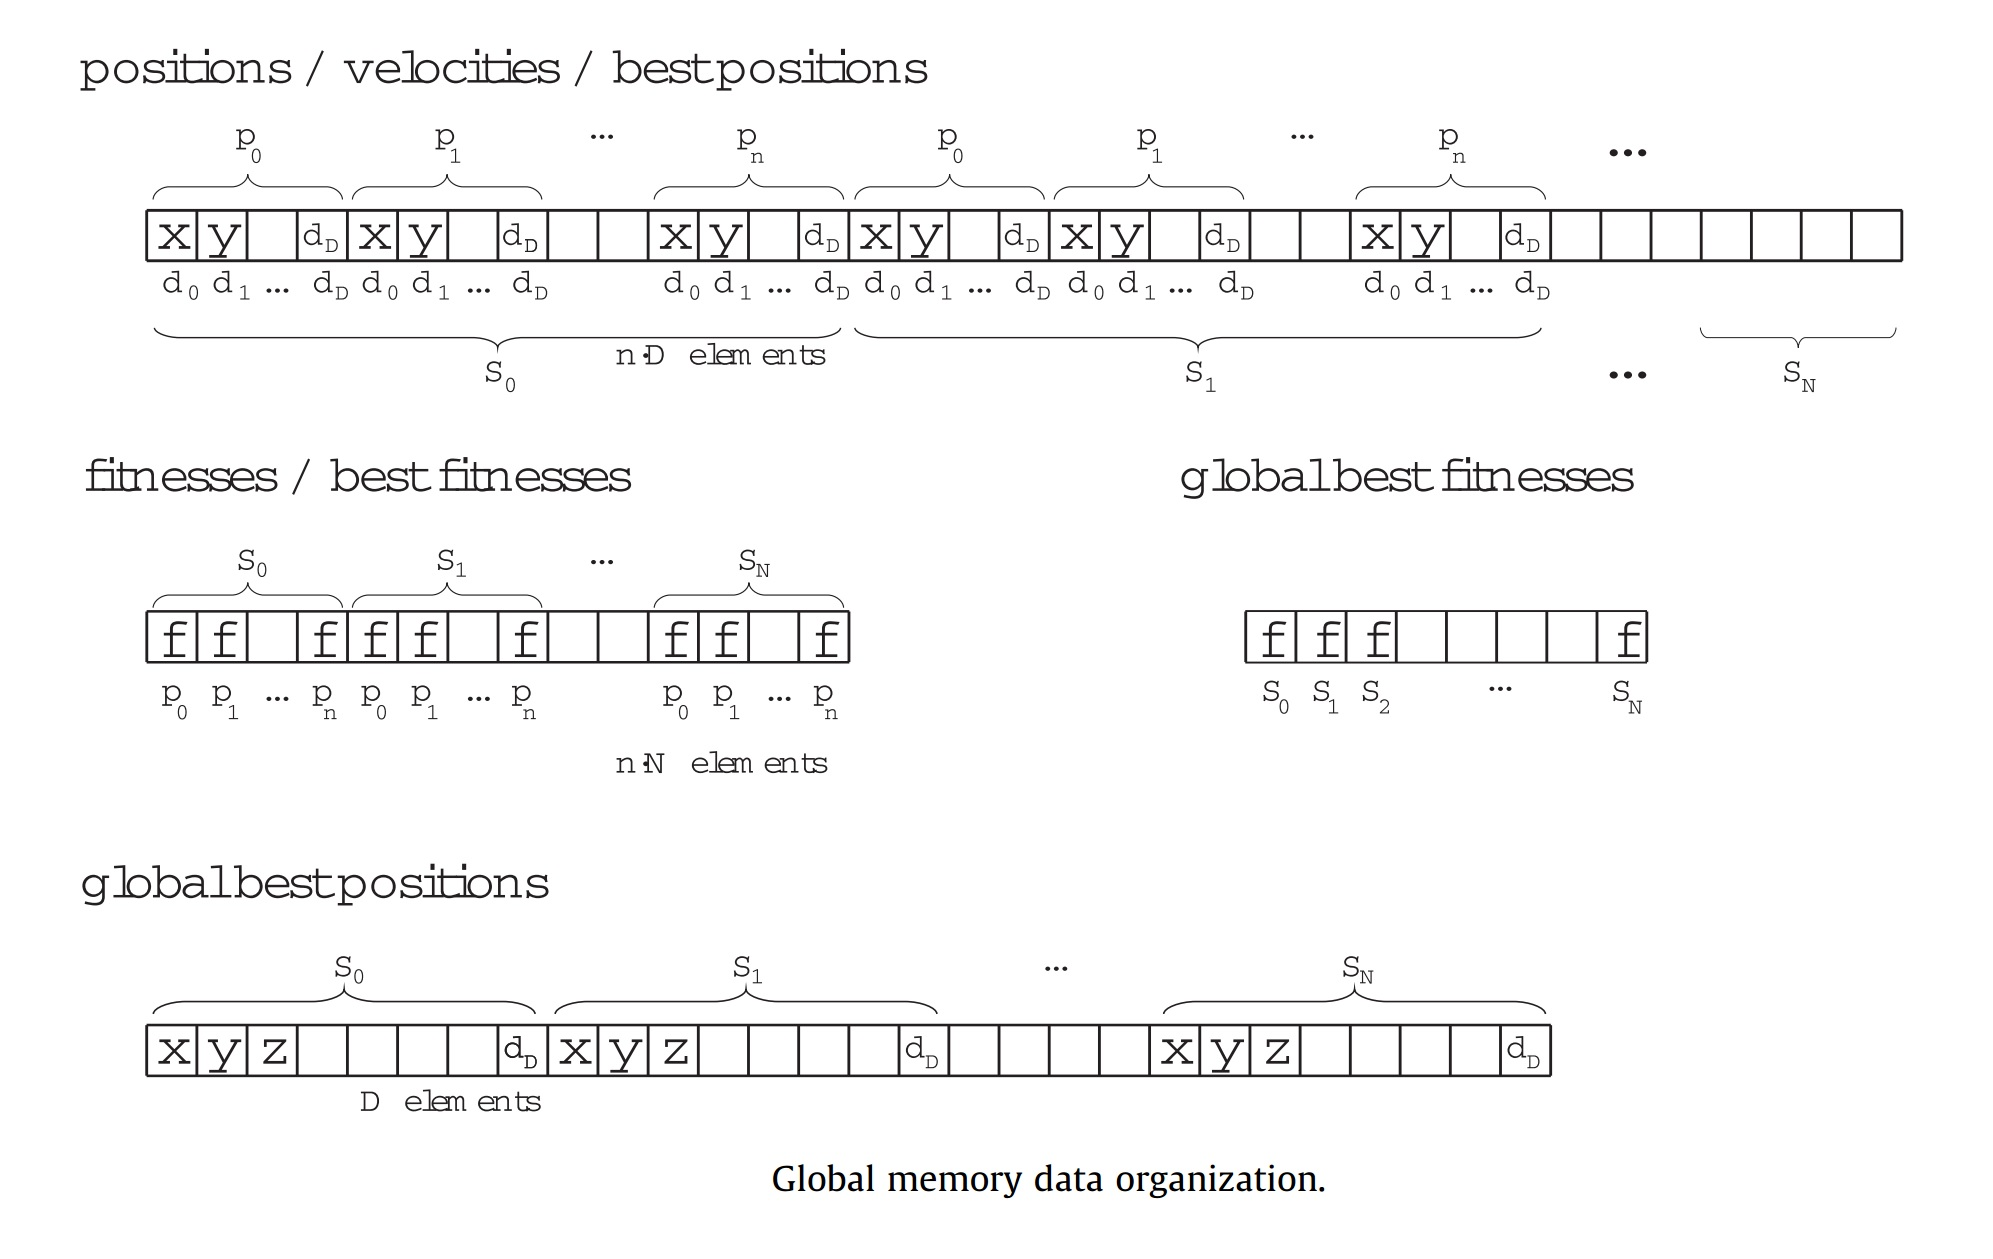 global-memory-data-organization